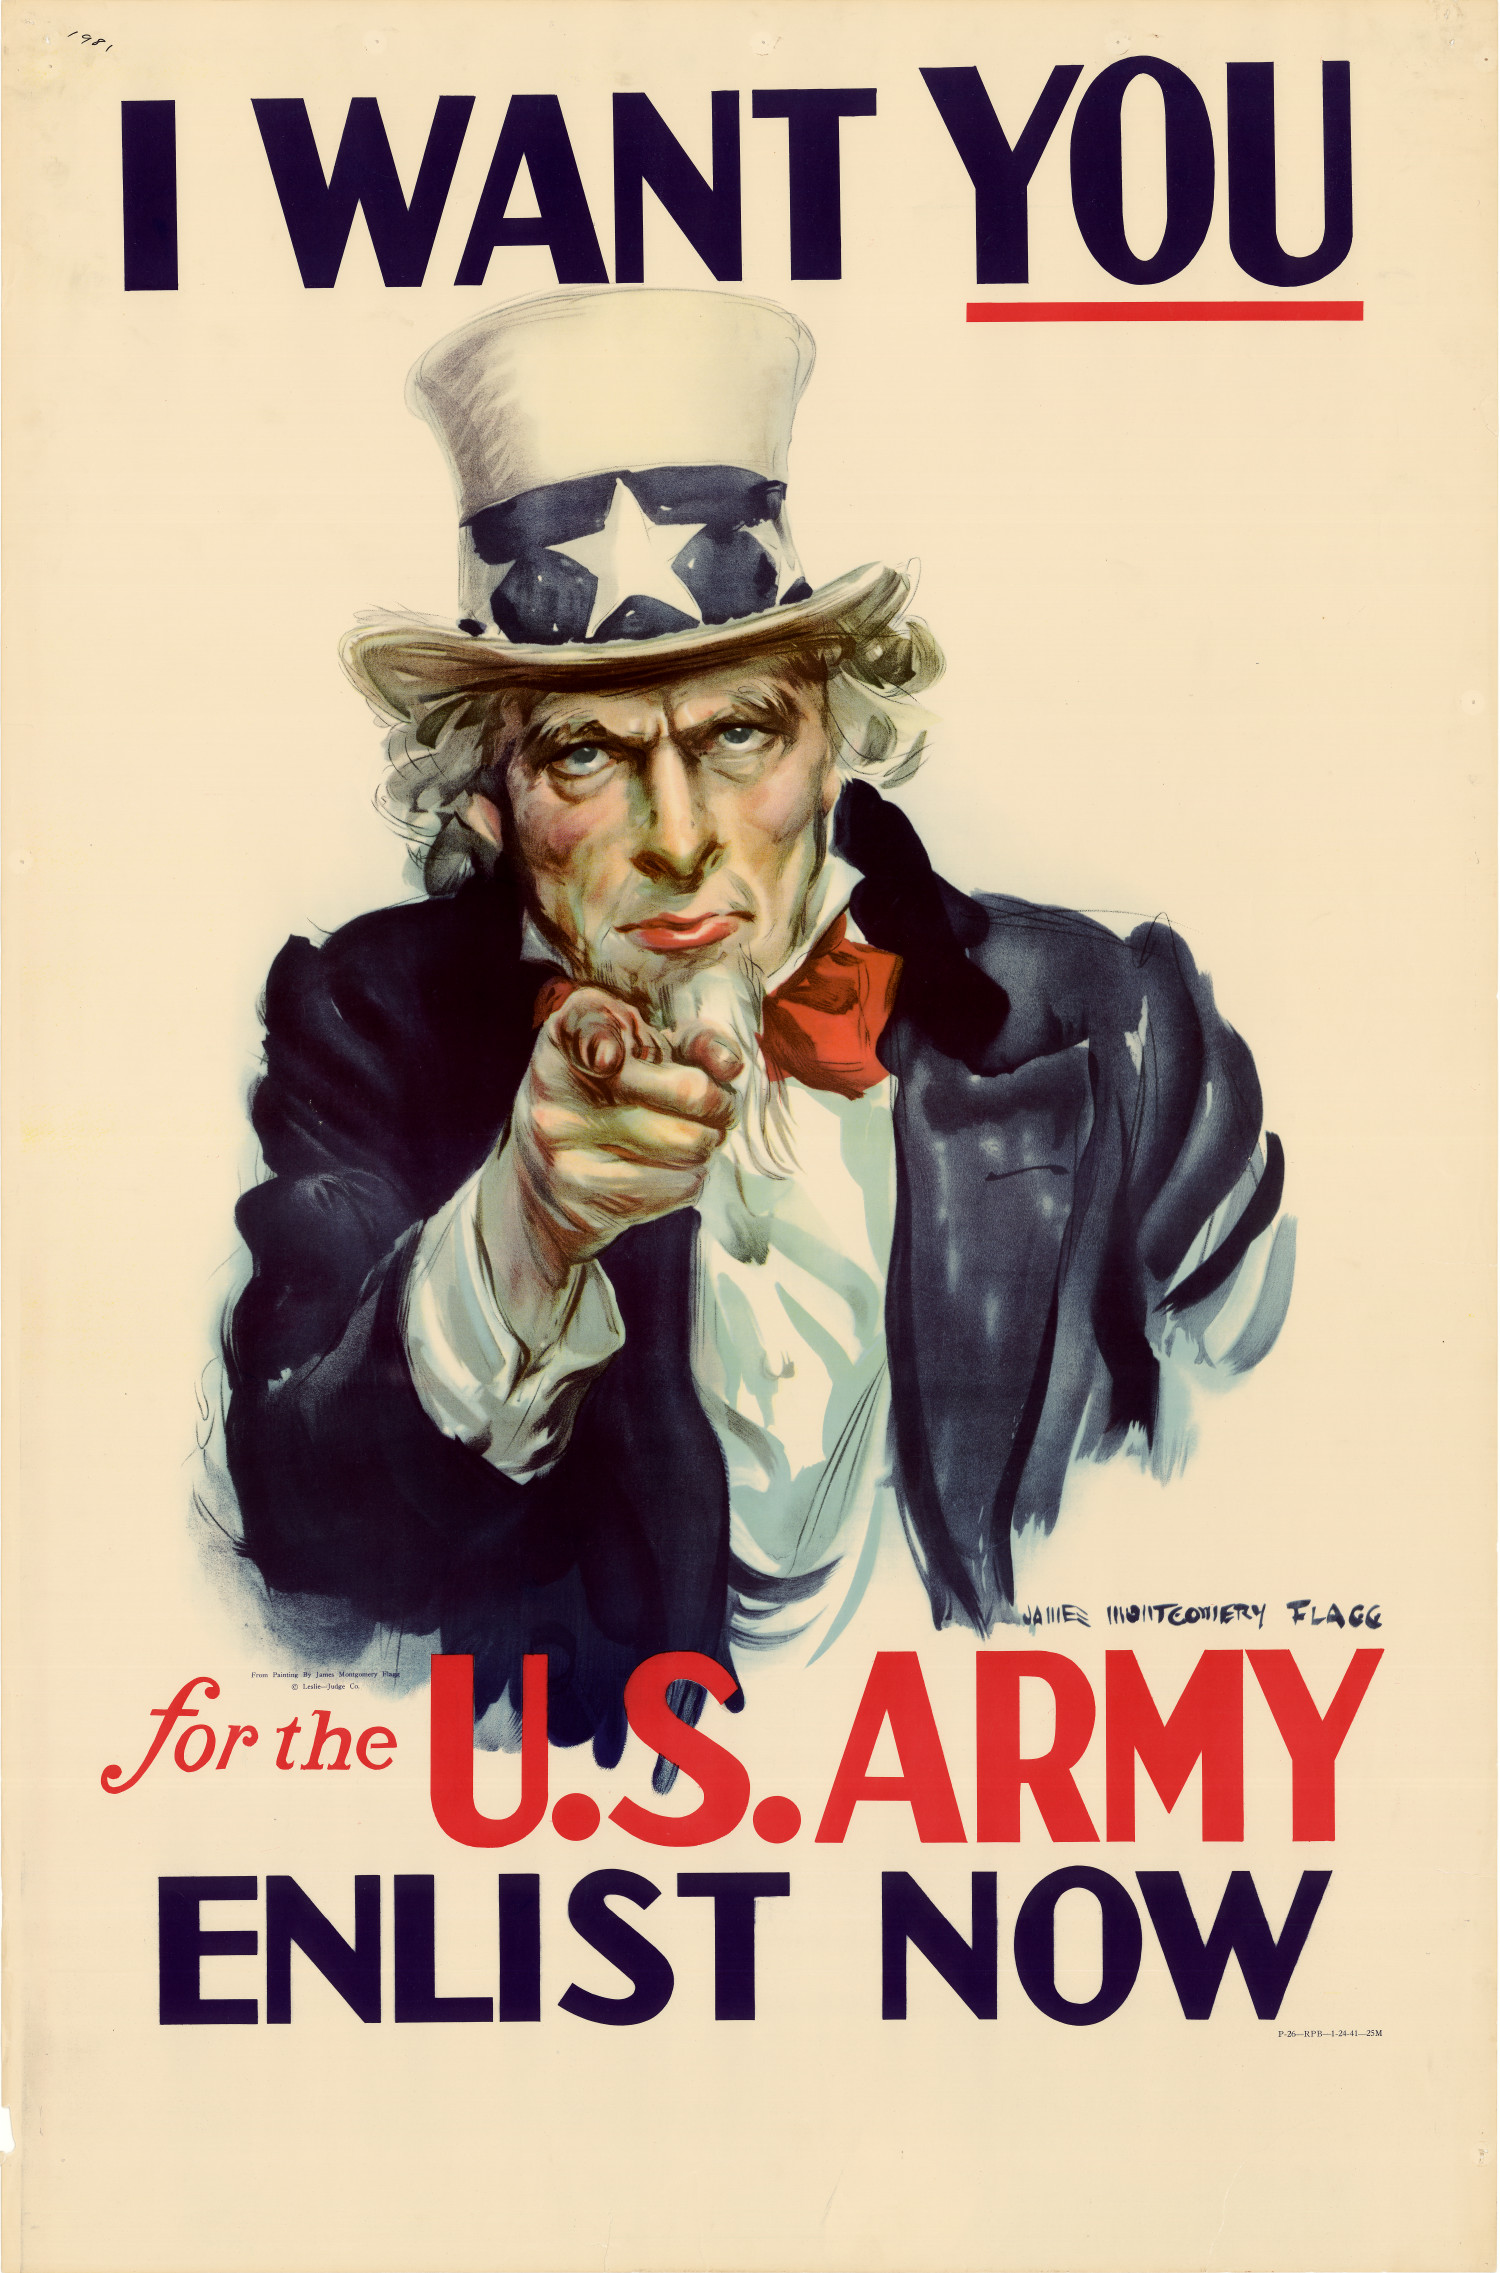 I want you for the U.S. Army : enlist now.                                                                                                      [Sequence #]: 1 of 1